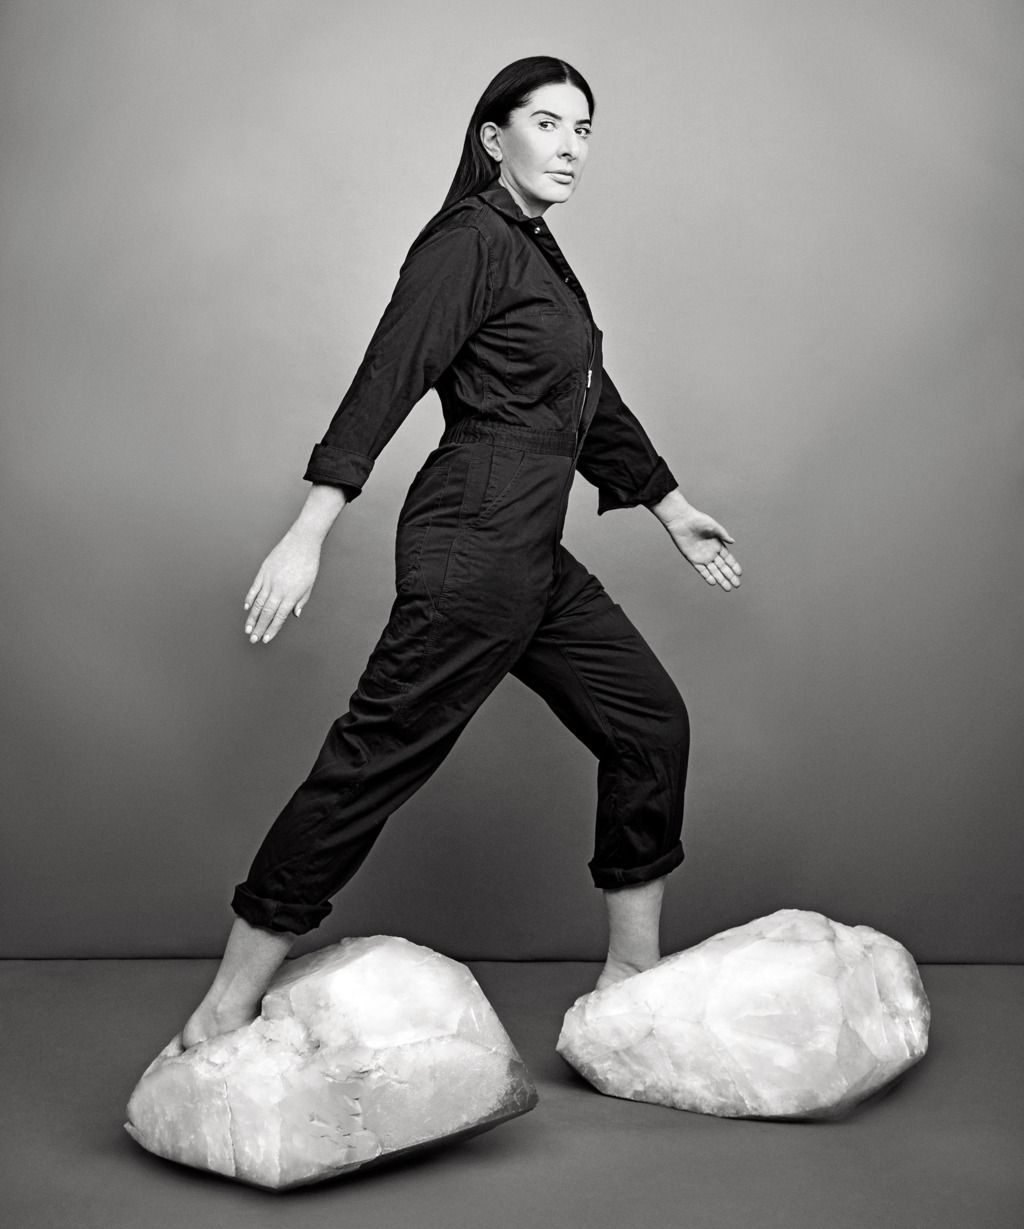 The World S Most Famous Performance Artist At 70 Marina Abramovic Performance Artist Performance Art